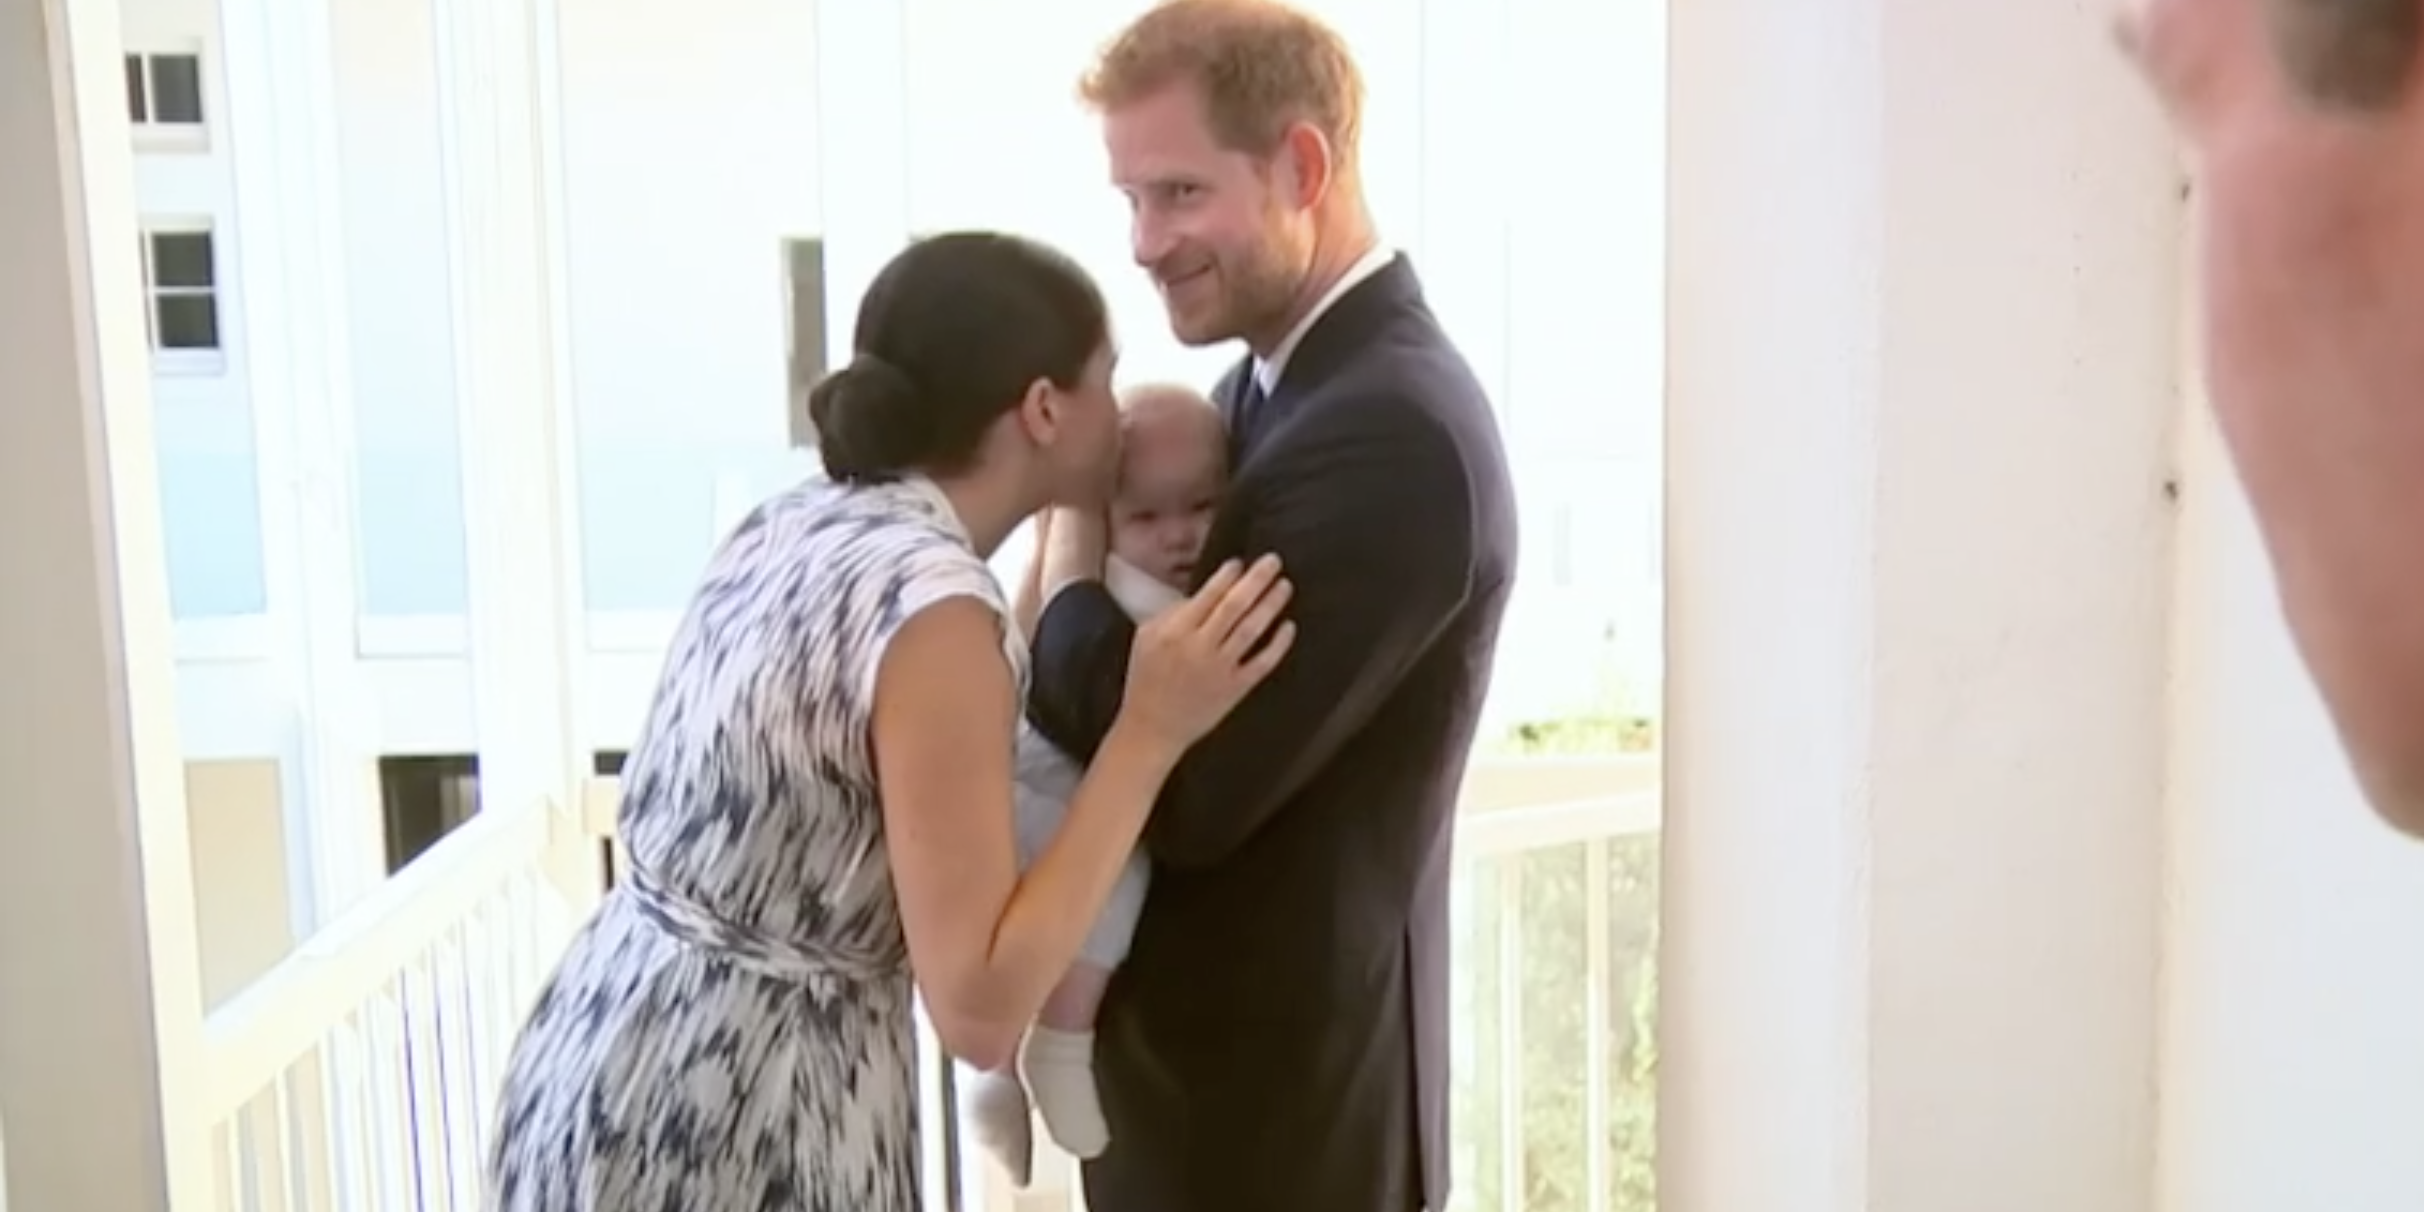 Meghan Markle Kisses Archie's Forehead in the Trailer for an Upcoming Documentary